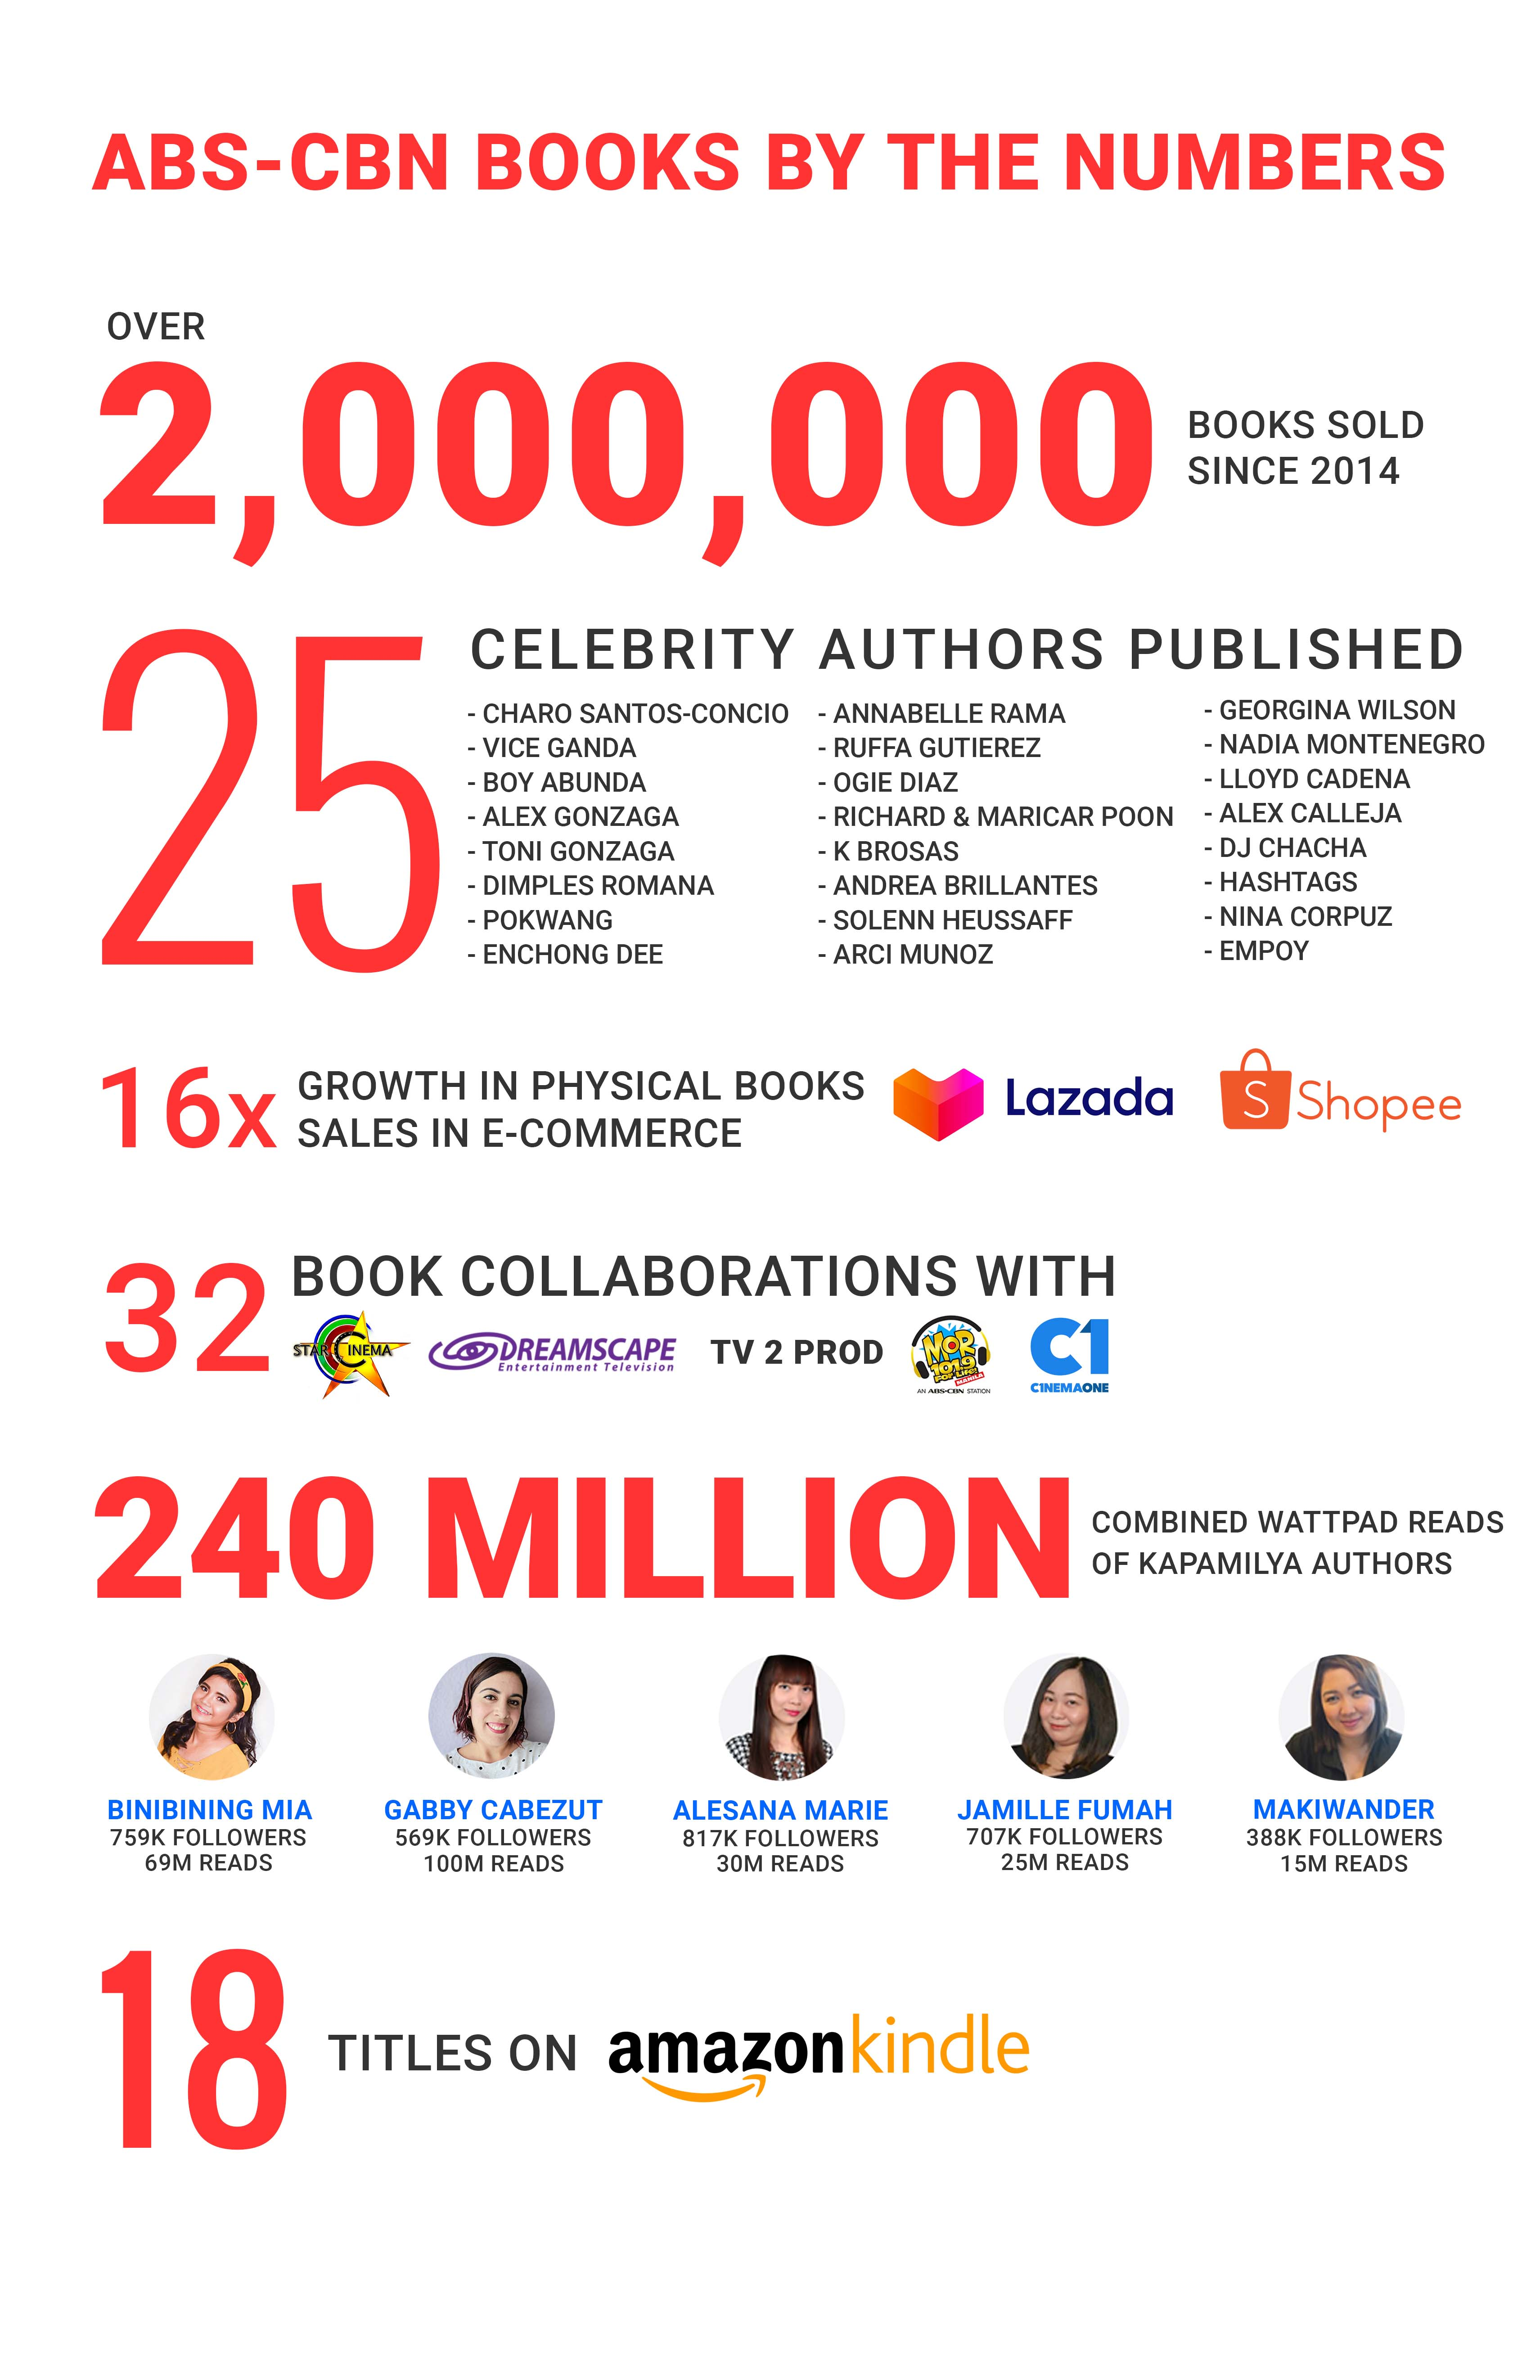 ABS-CBN Books by the Numbers